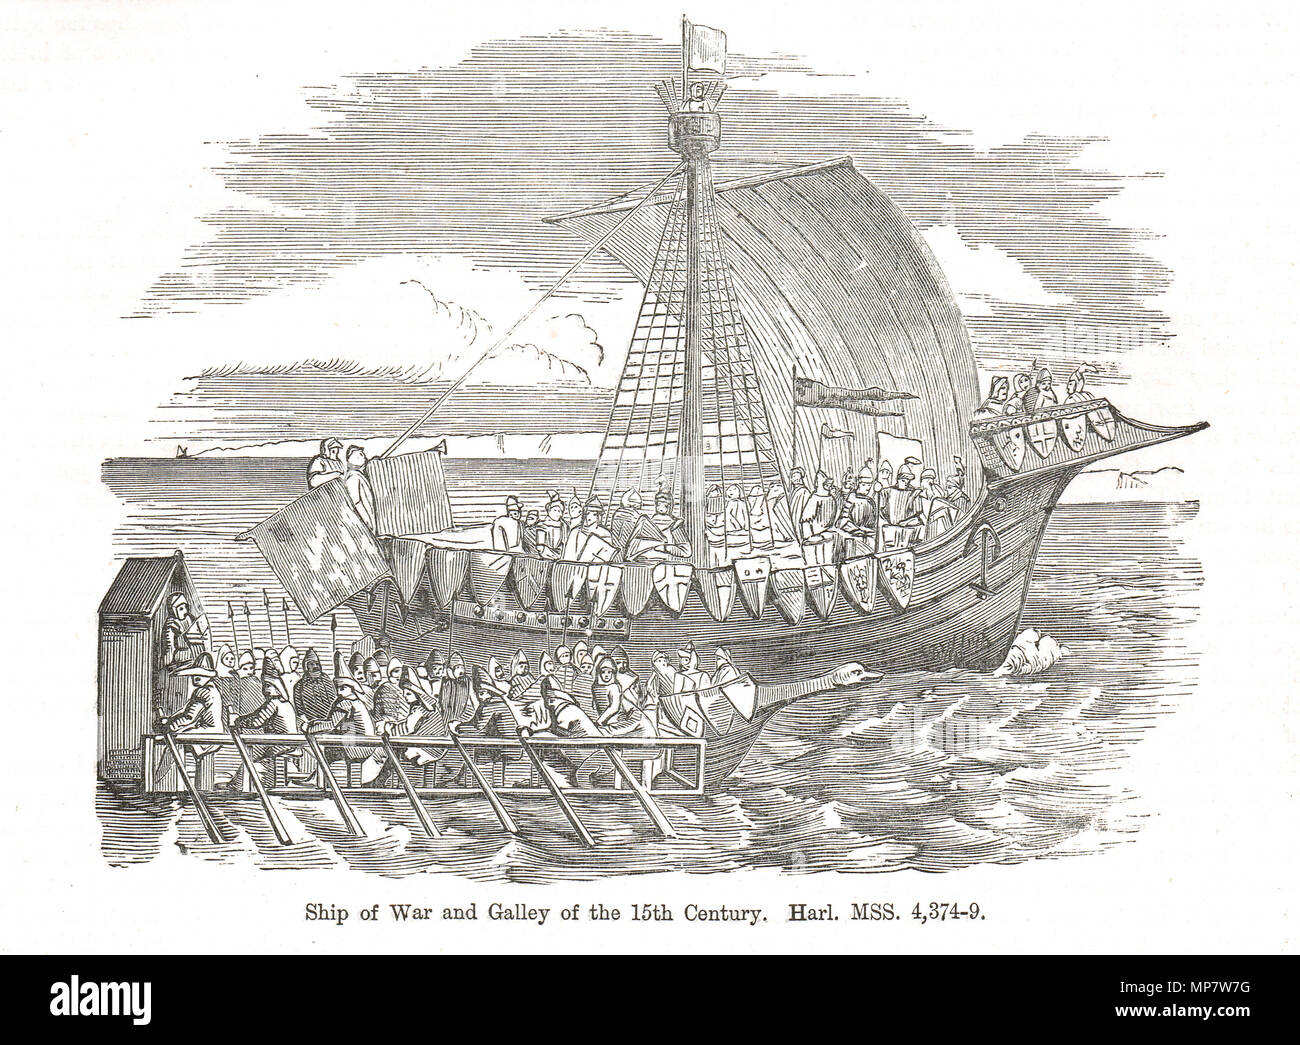 Ship of war and a Galley of the 15th Century - Stock Image